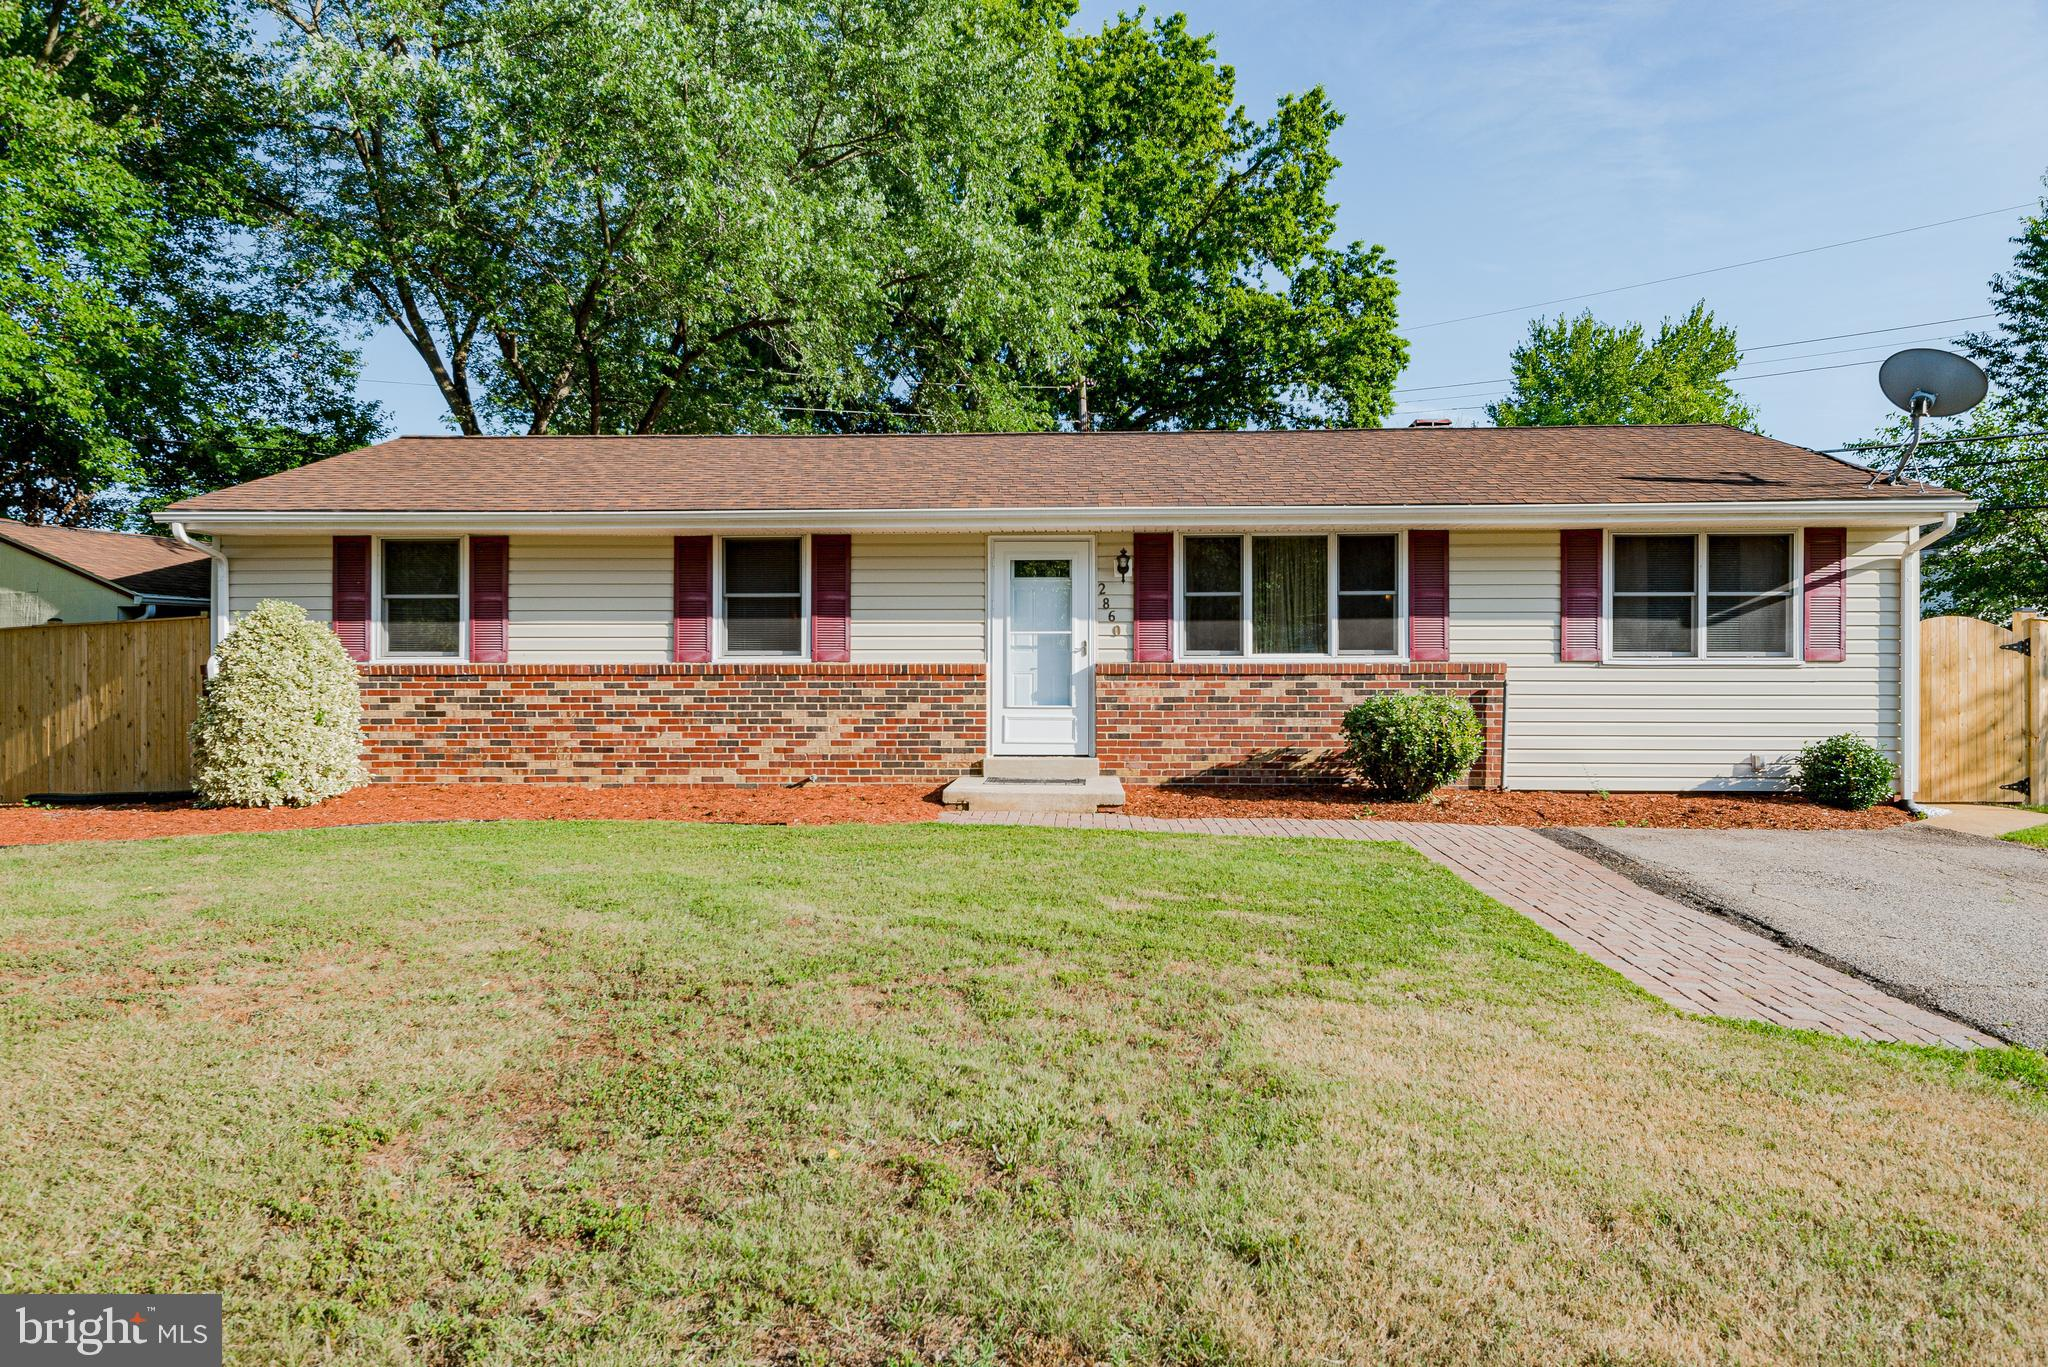 It's back, but not for long. Must see! HOA free! Beautiful 1 level rambler with 3 bedrooms, 1 full b